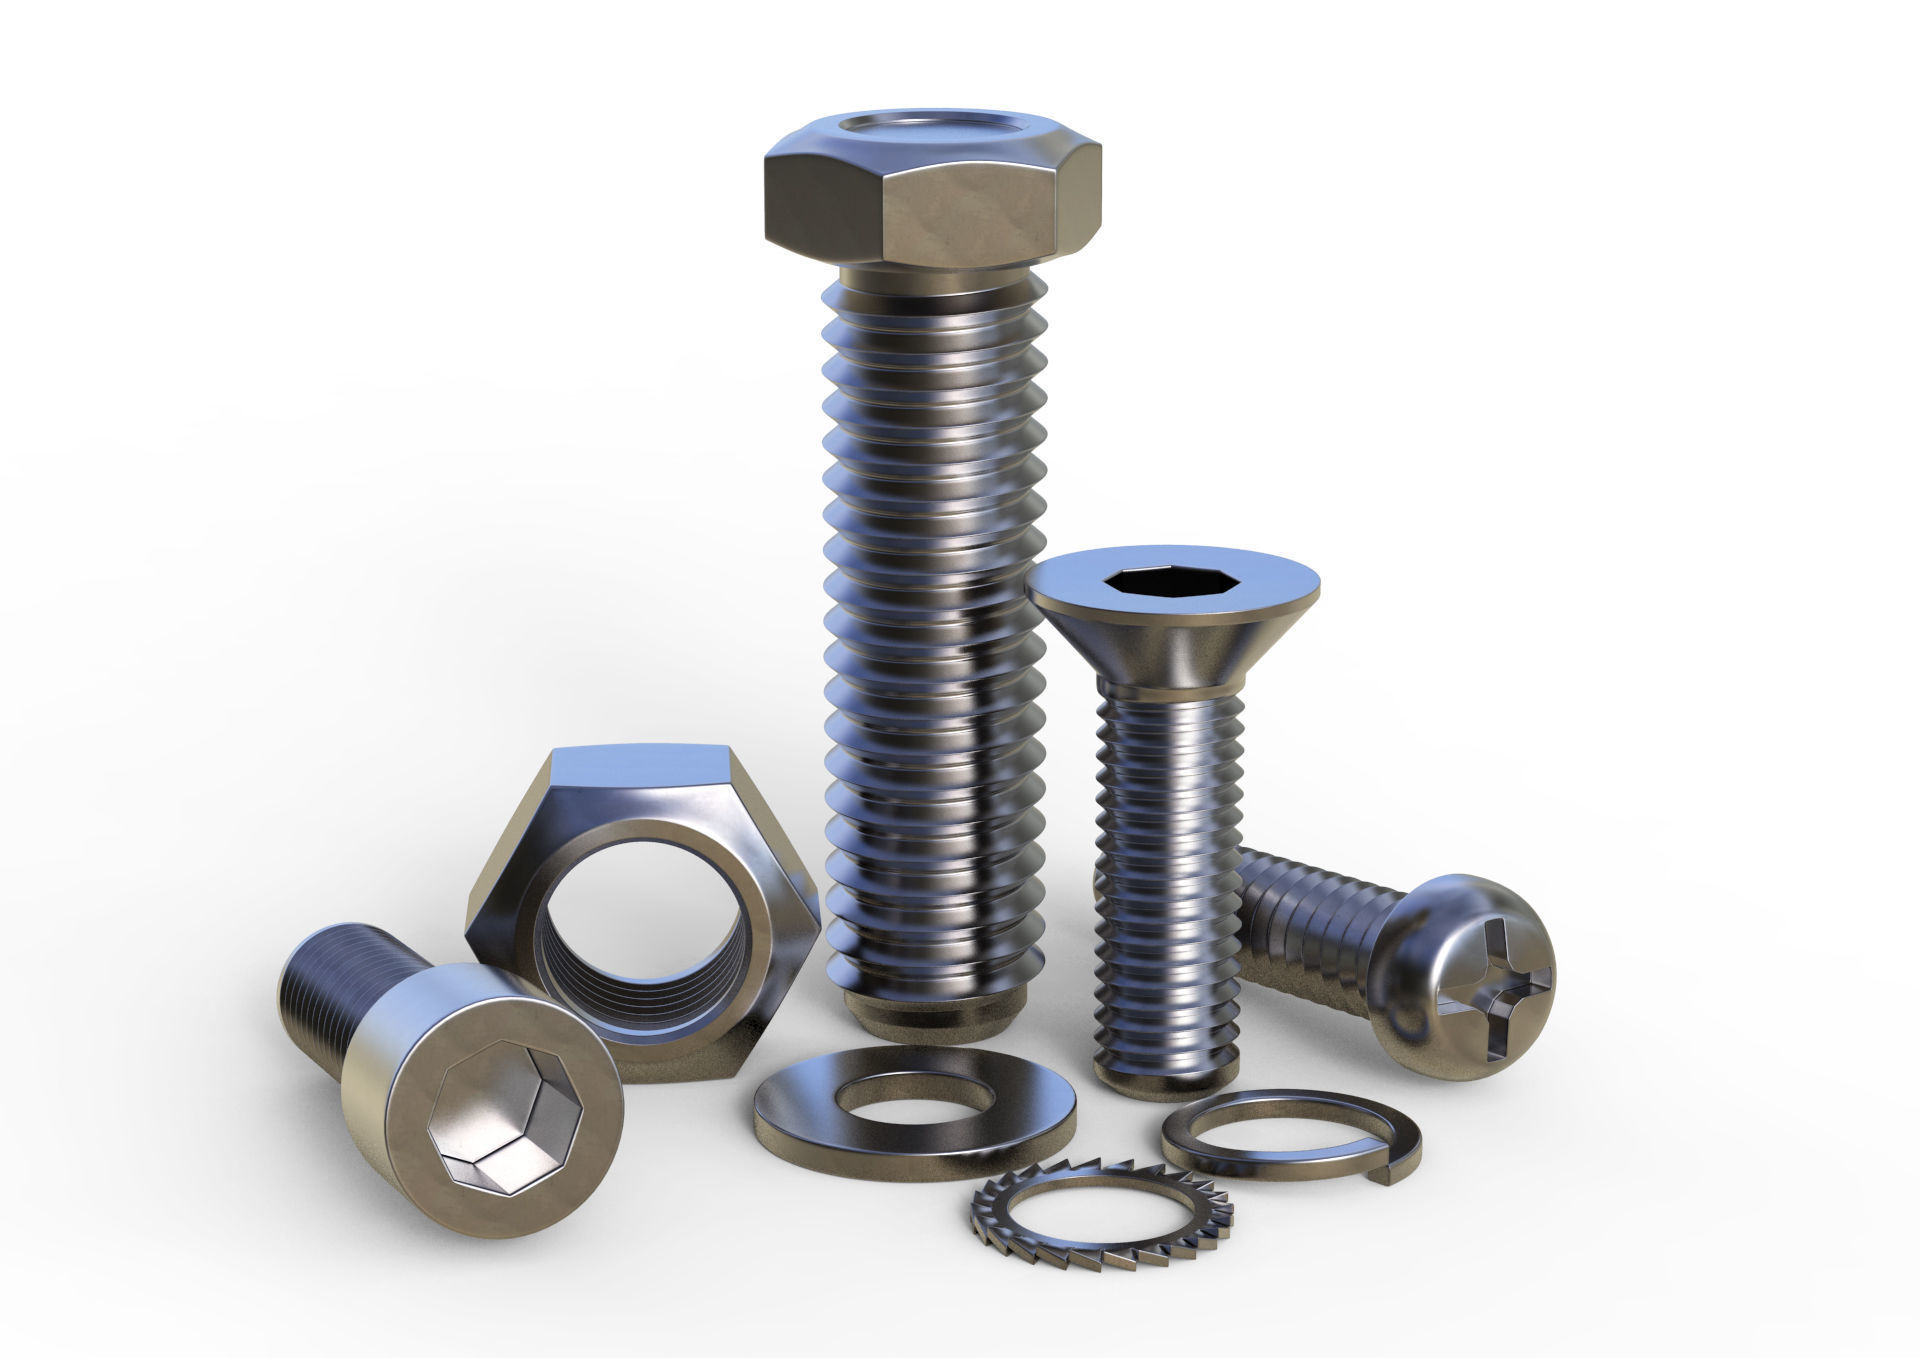 3d Model Nuts And Bolts